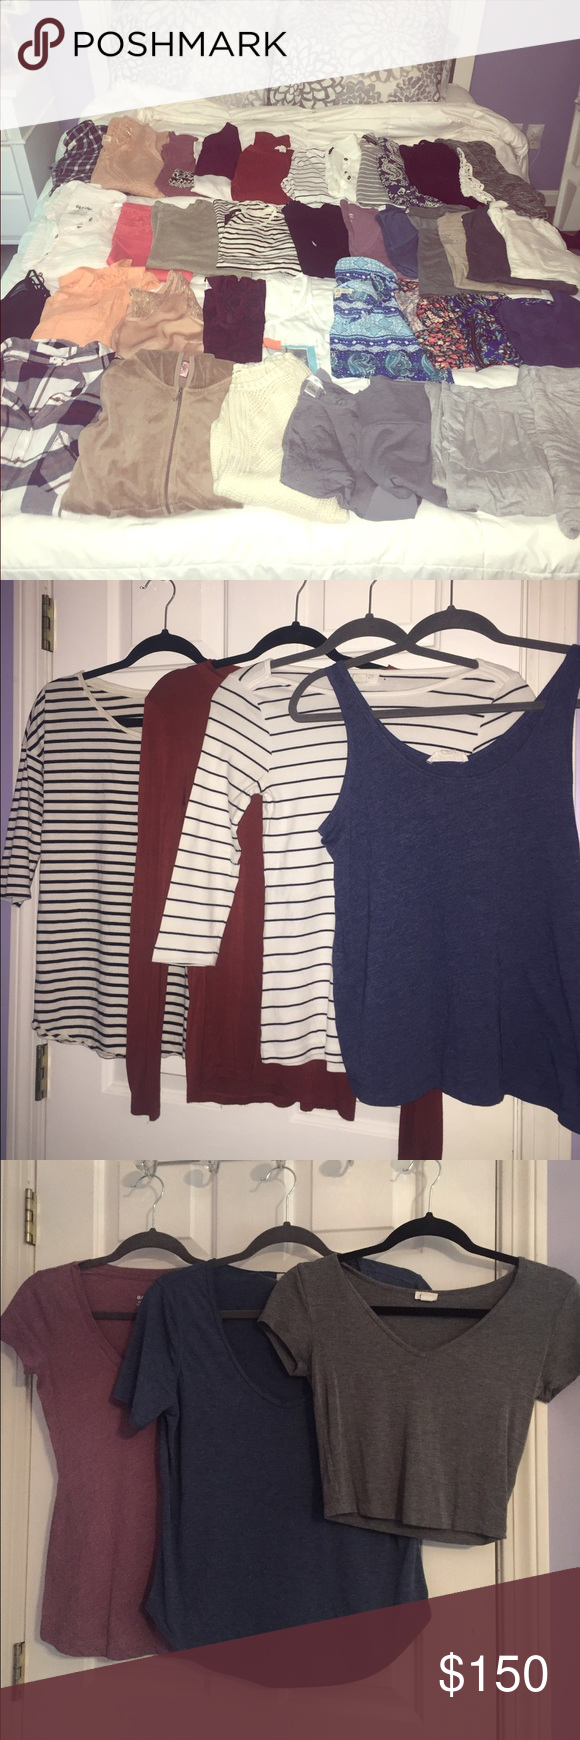 HUGE 37 PIECE LOT SIZE SMALL want a new wardrobe for back to school??? see additional photos!! all pieces size small a few mediums and xs mixed in but all fit size small and all in excellent used condition from a smoke free home!! NO TRADES but I am open to offers but please NO LOW BALLERS! Forever 21 Tops